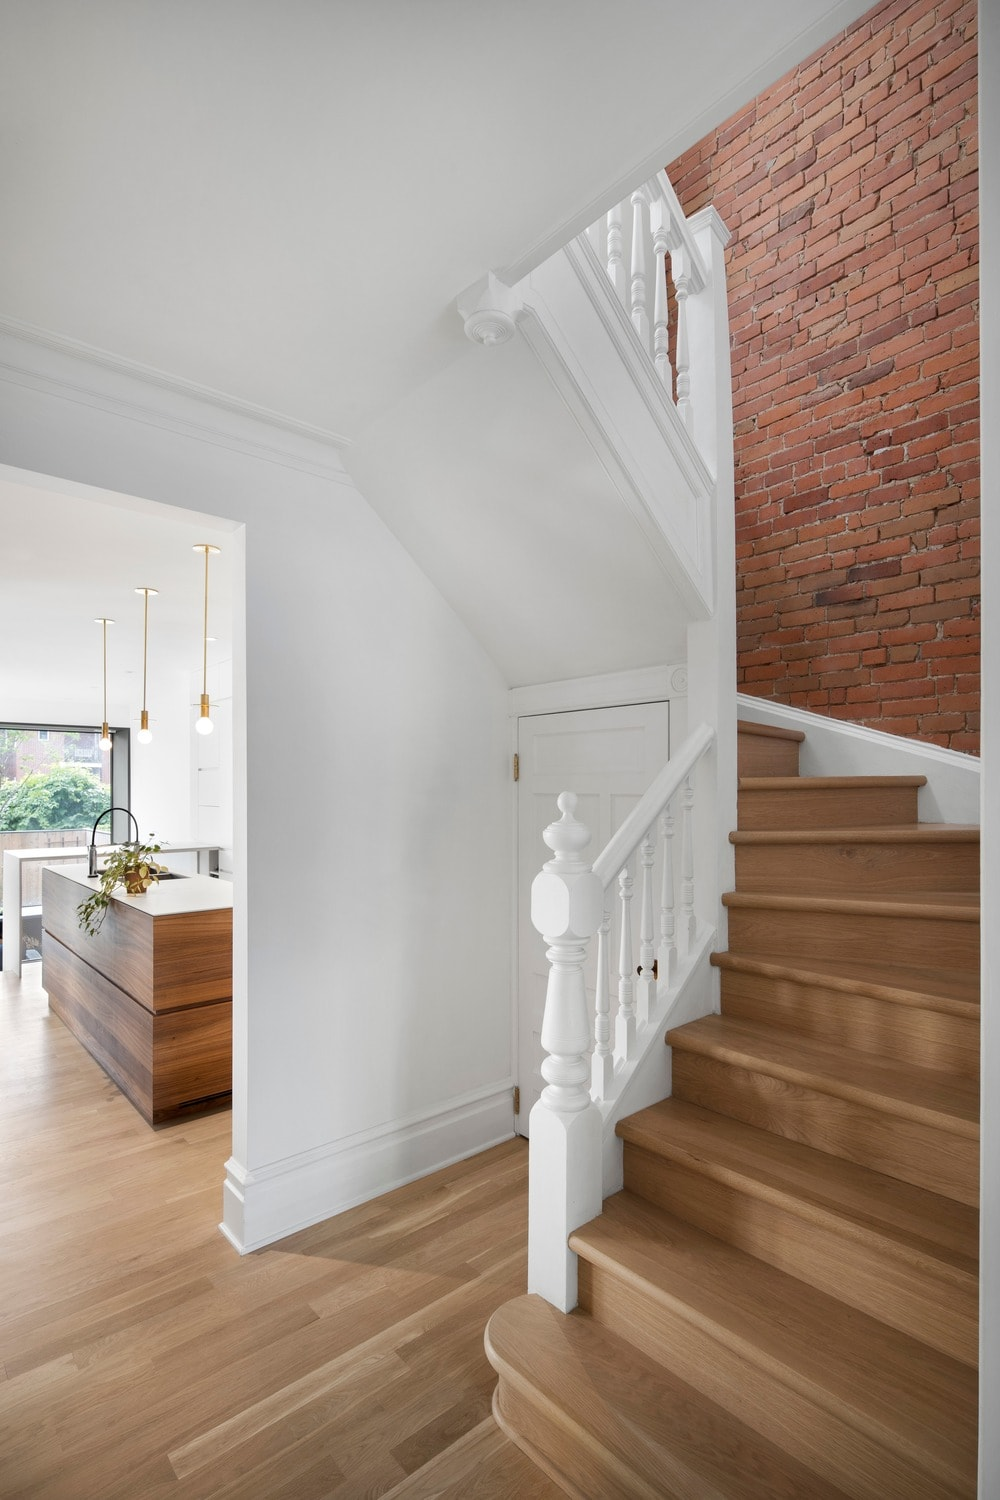 A few steps from the kitchen is this staircase that has wooden steps to match the hardwood flooring. These are then contrasted by the white wooden railings and the red brick wall.